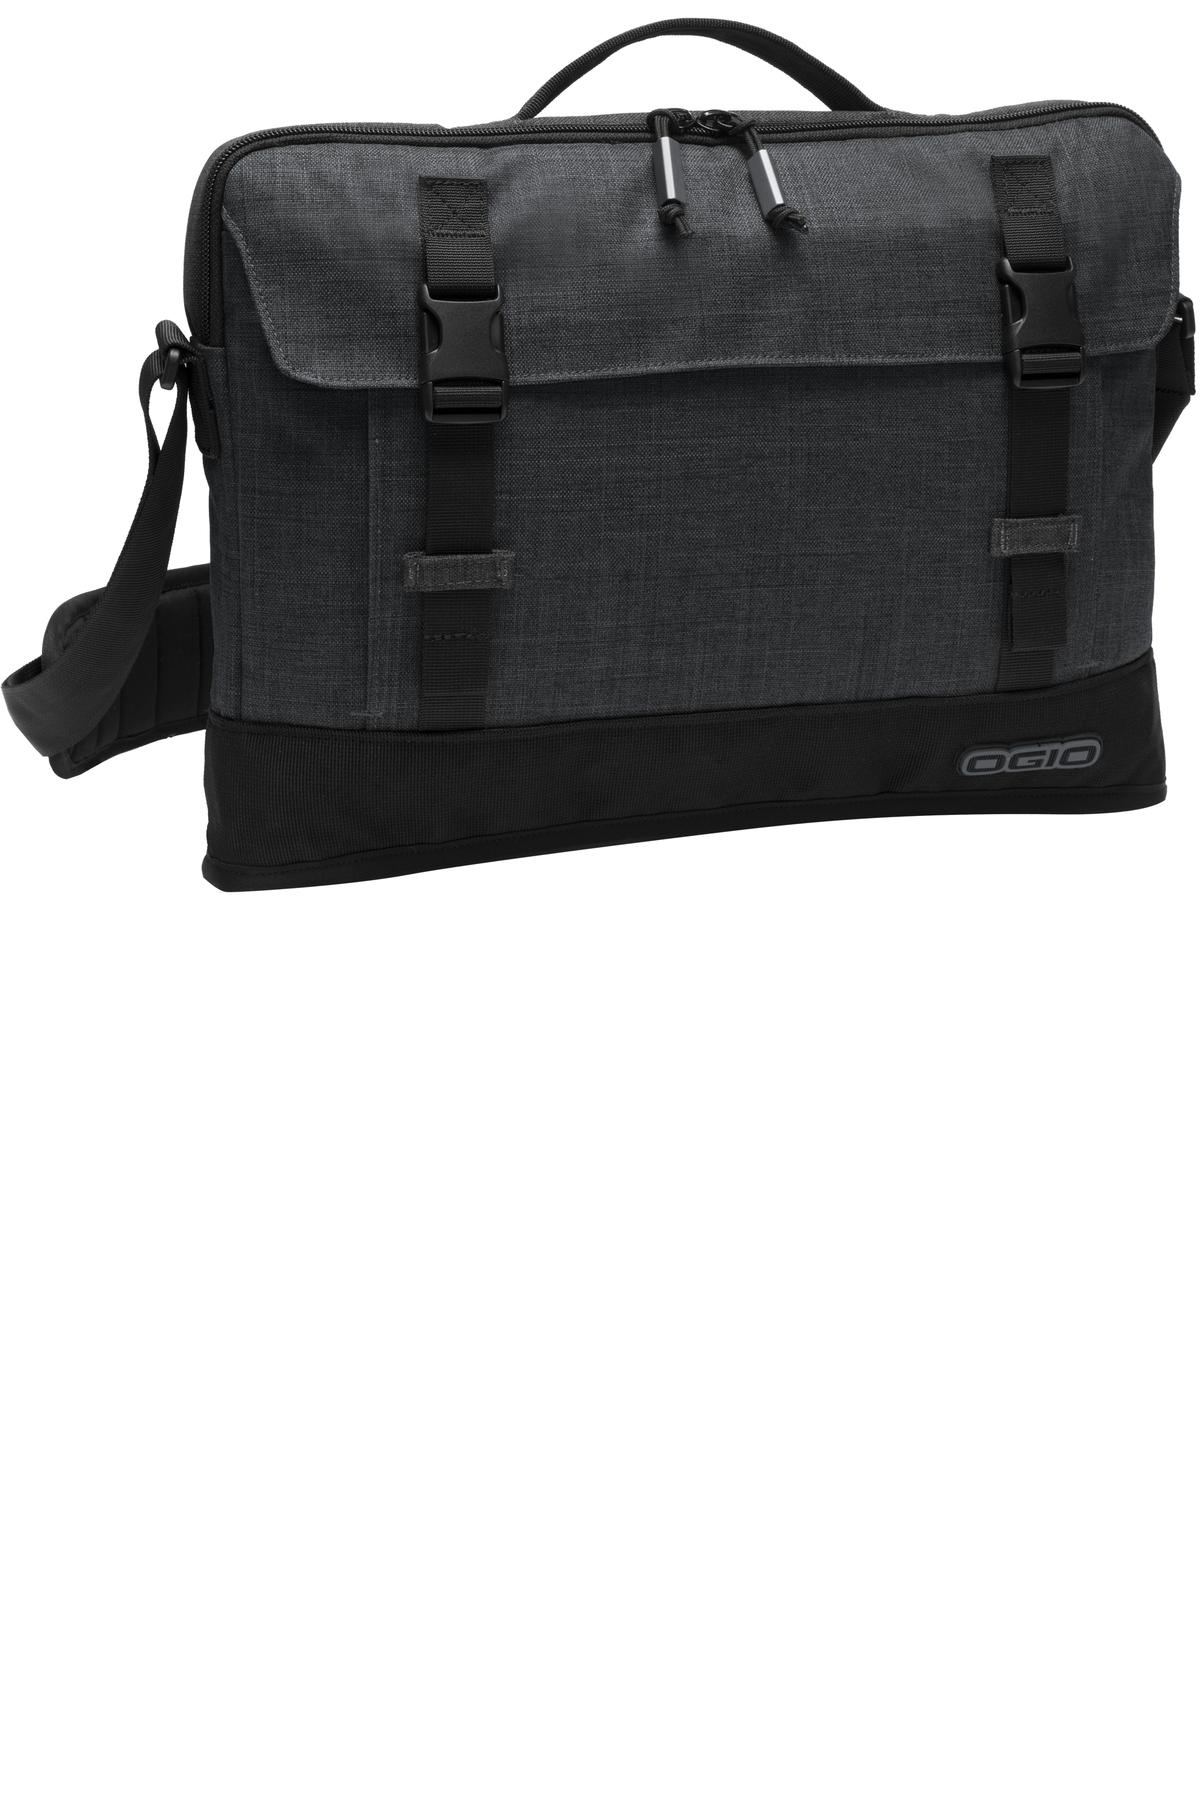 OGIO  417051 - Apex 15 Slim Case